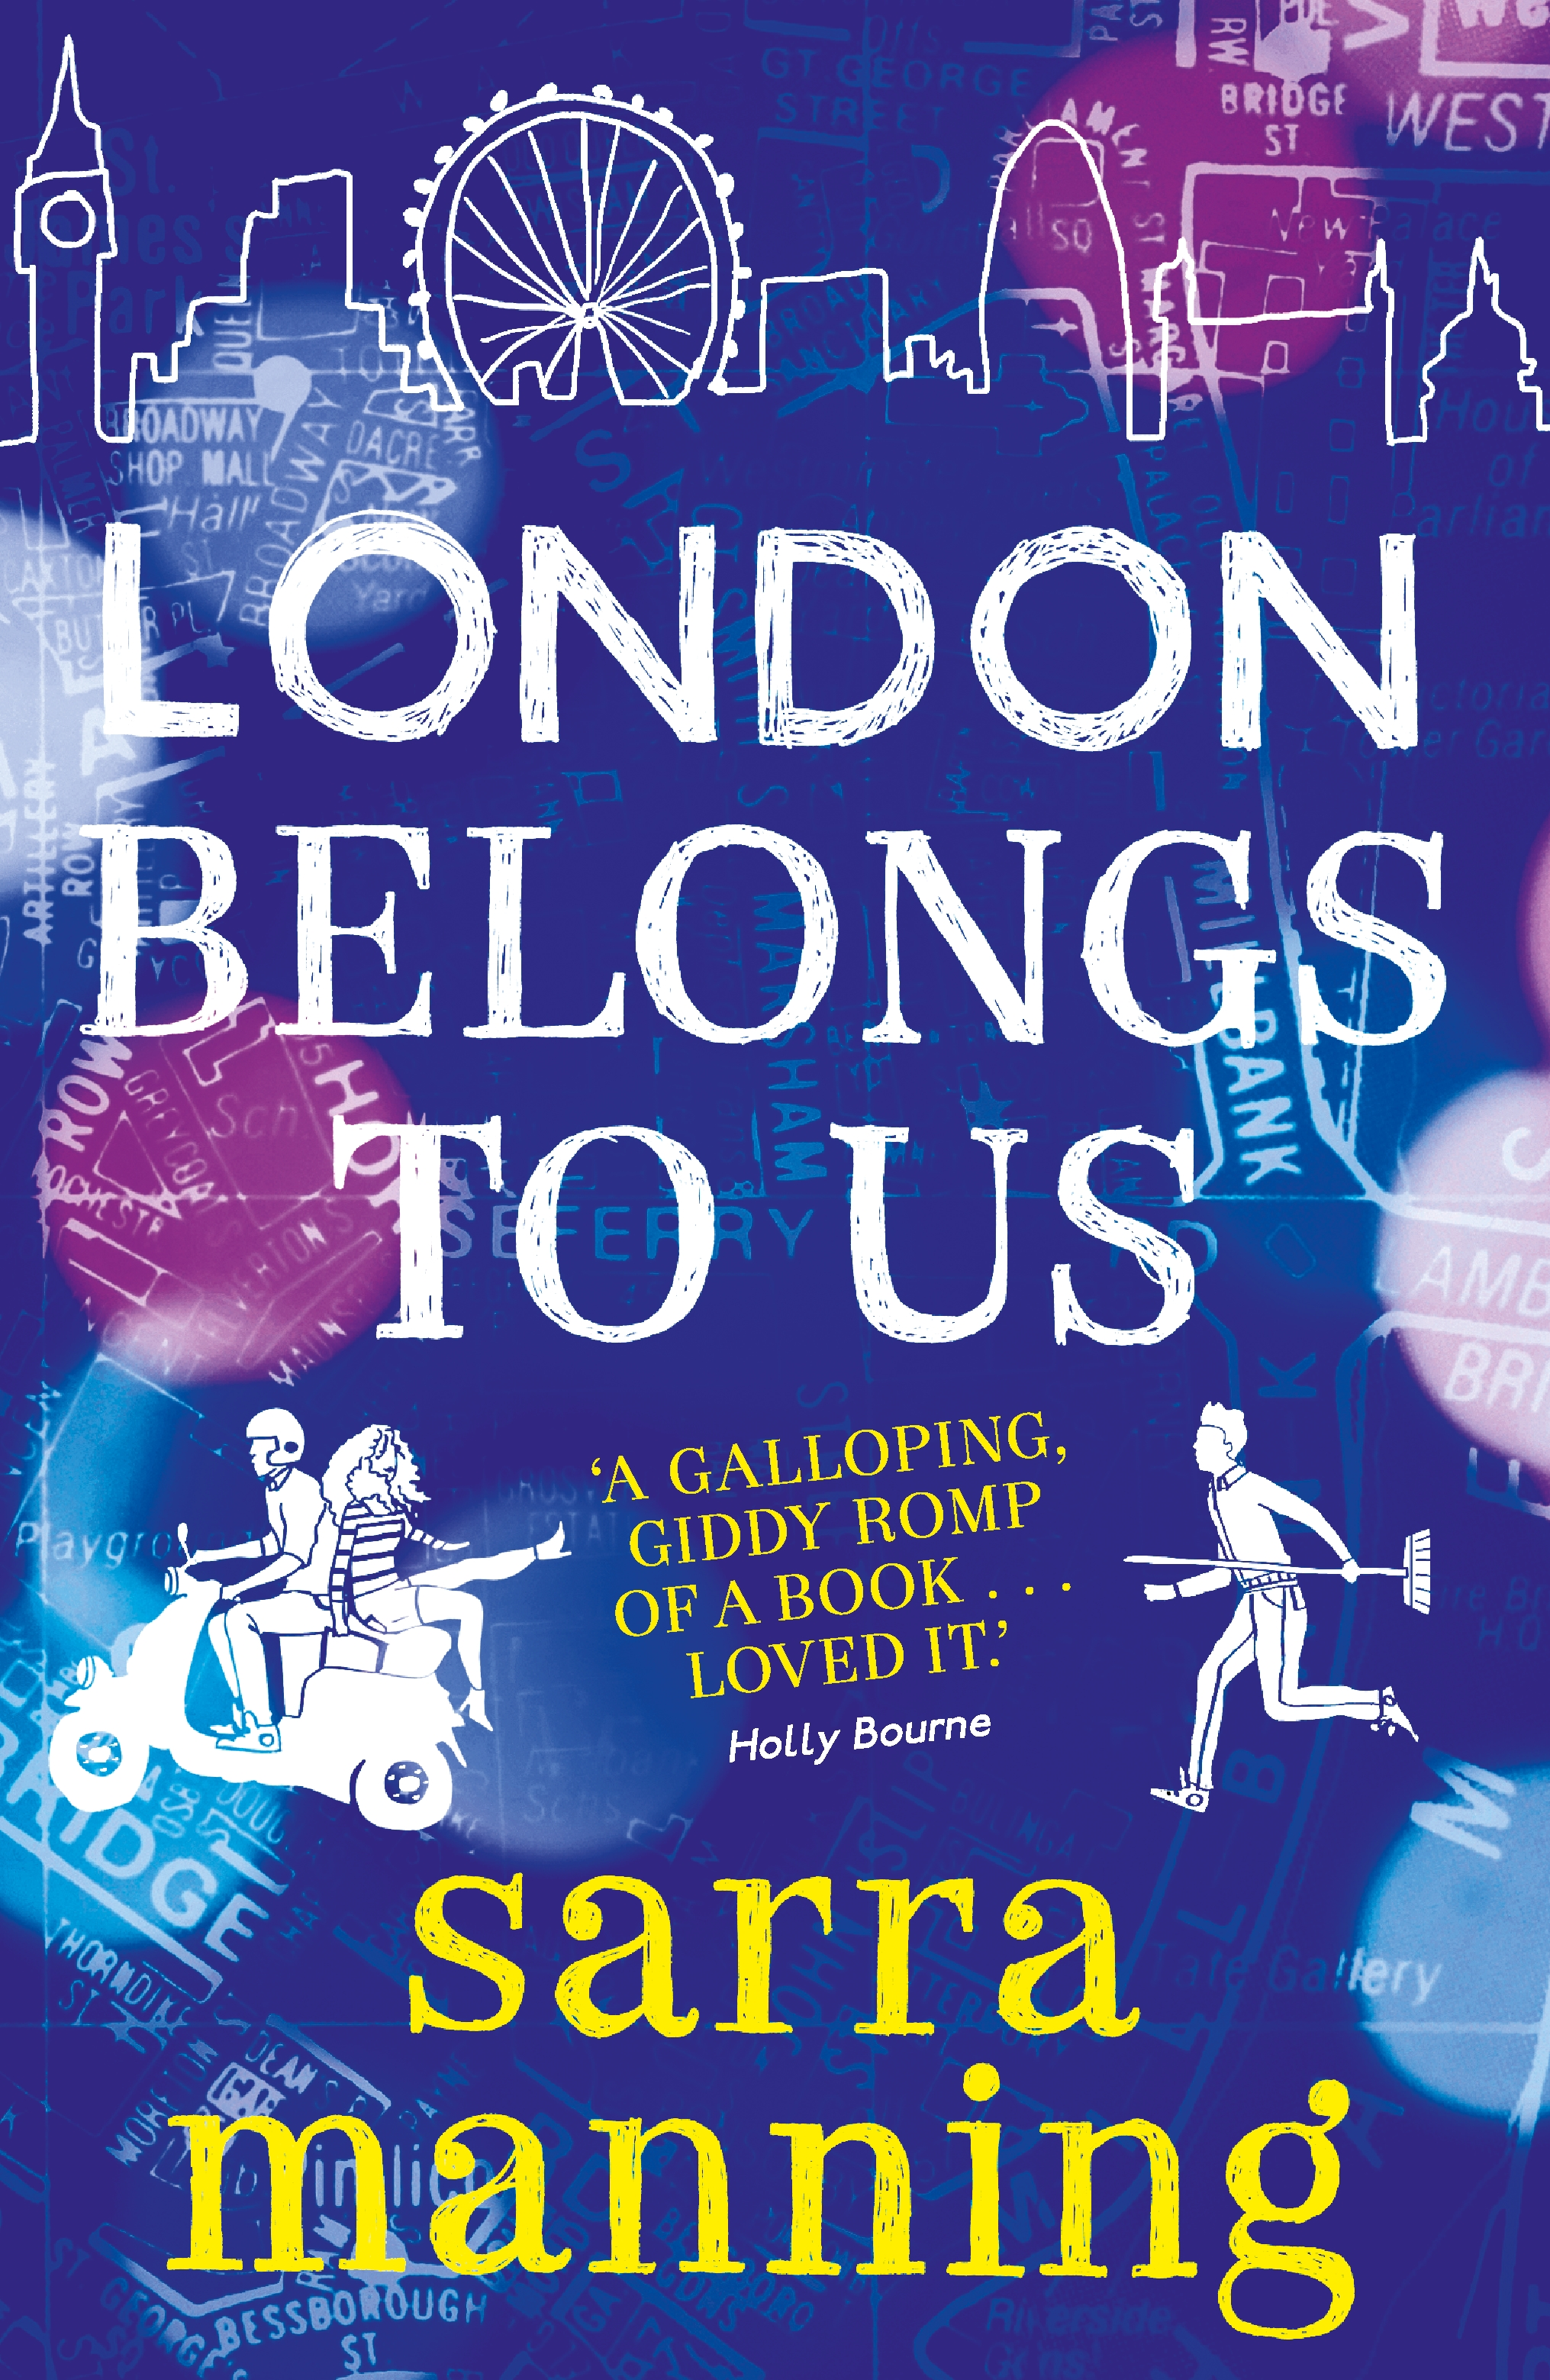 London Belongs to Us by Sarra Manning